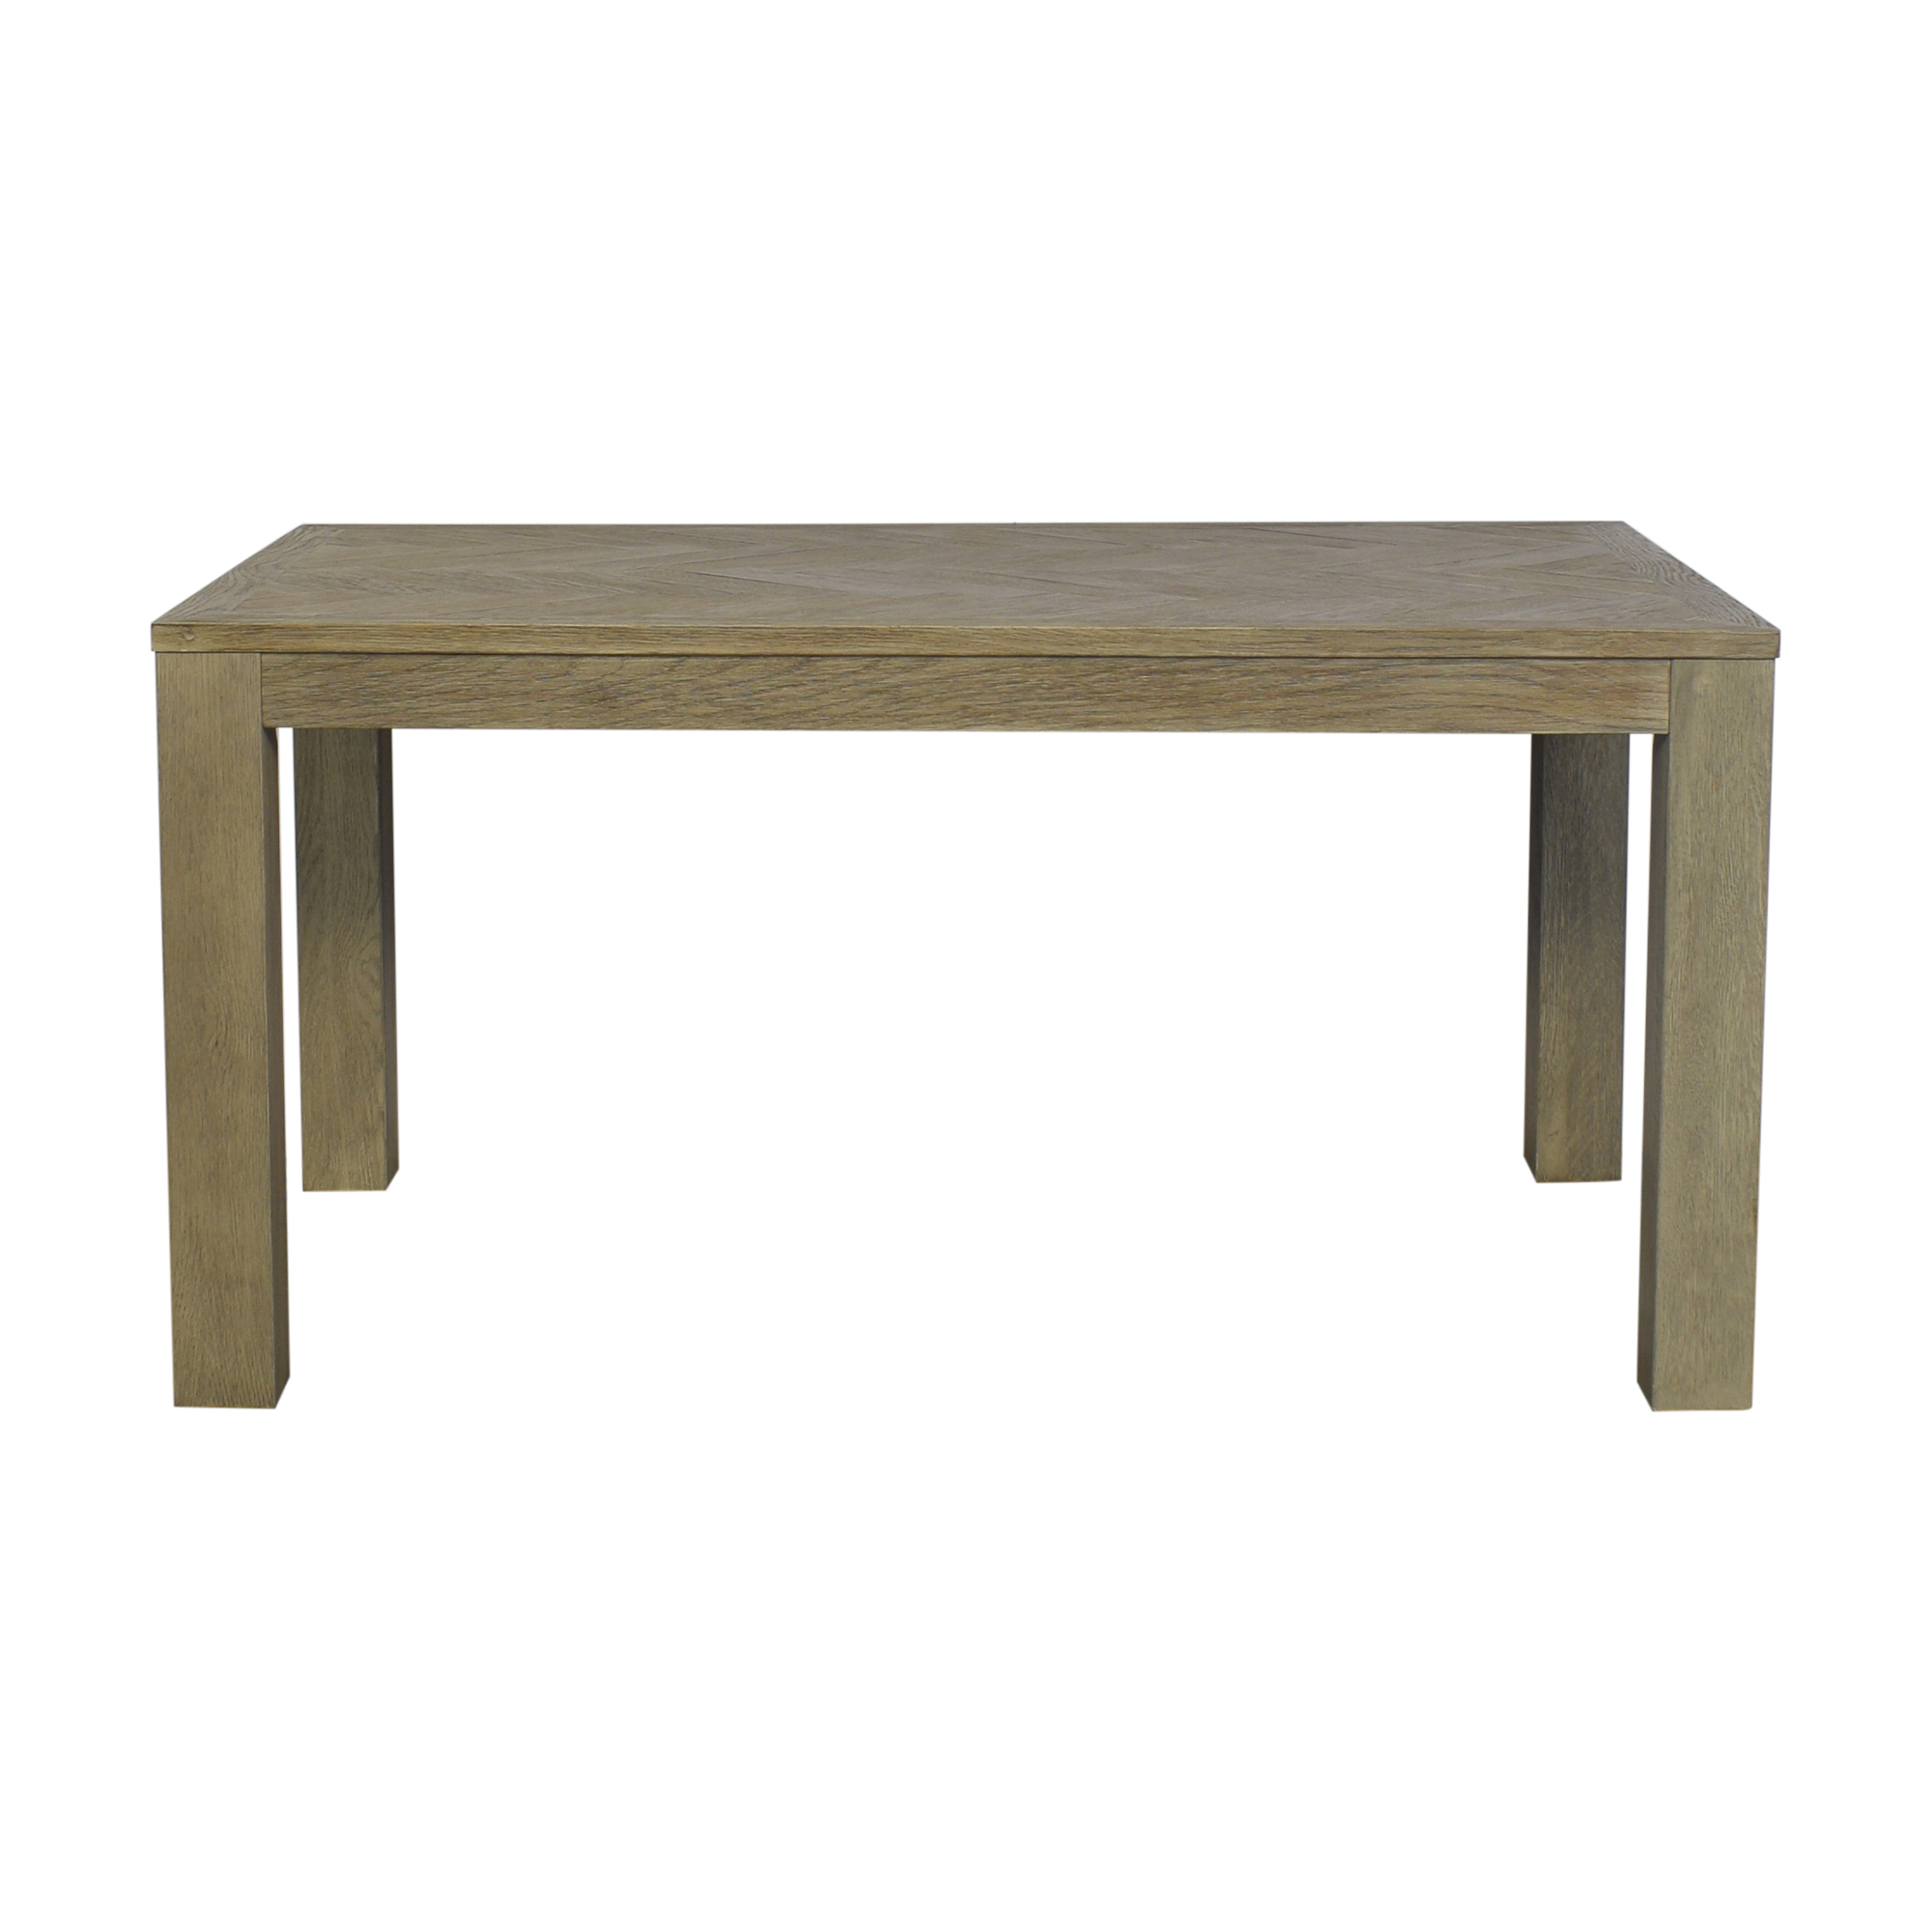 Restoration Hardware Restoration Hardware Herringbone Dining Table discount